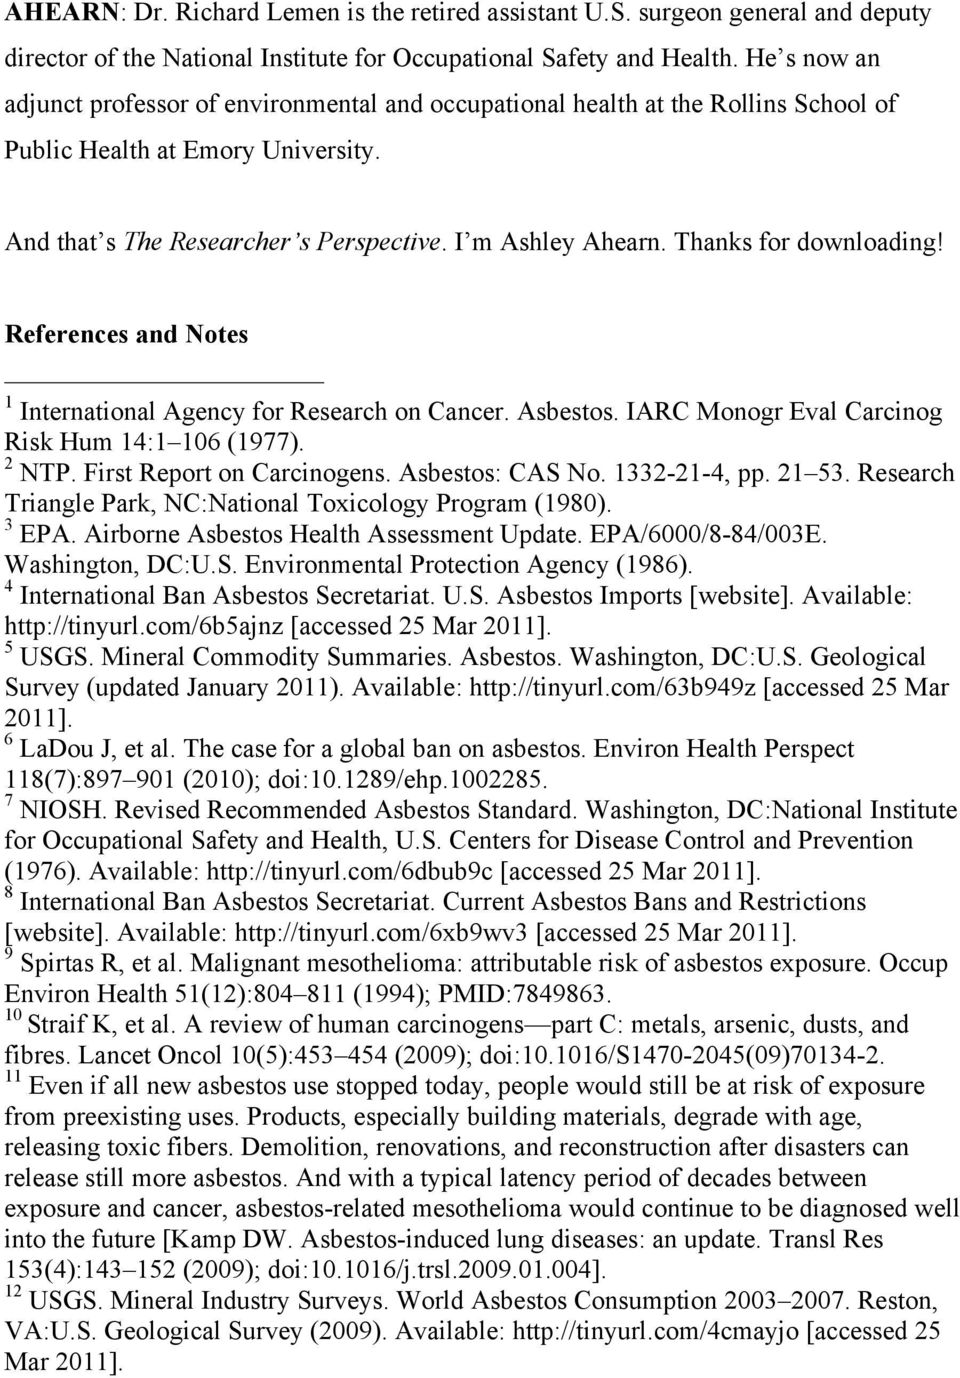 Thanks for downloading! References and Notes 1 International Agency for Research on Cancer. Asbestos. IARC Monogr Eval Carcinog Risk Hum 14:1 106 (1977). 2 NTP. First Report on Carcinogens.